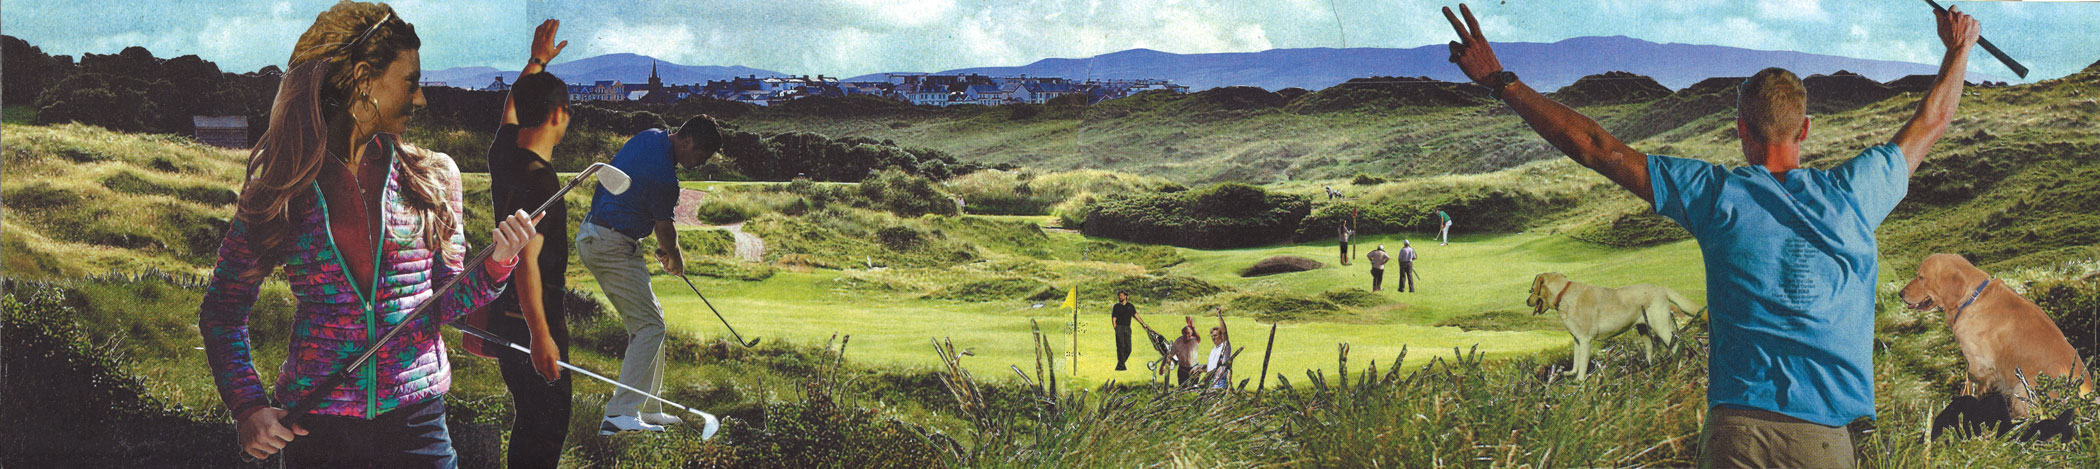 ref-15—royal-portrush-into-the-valley—main